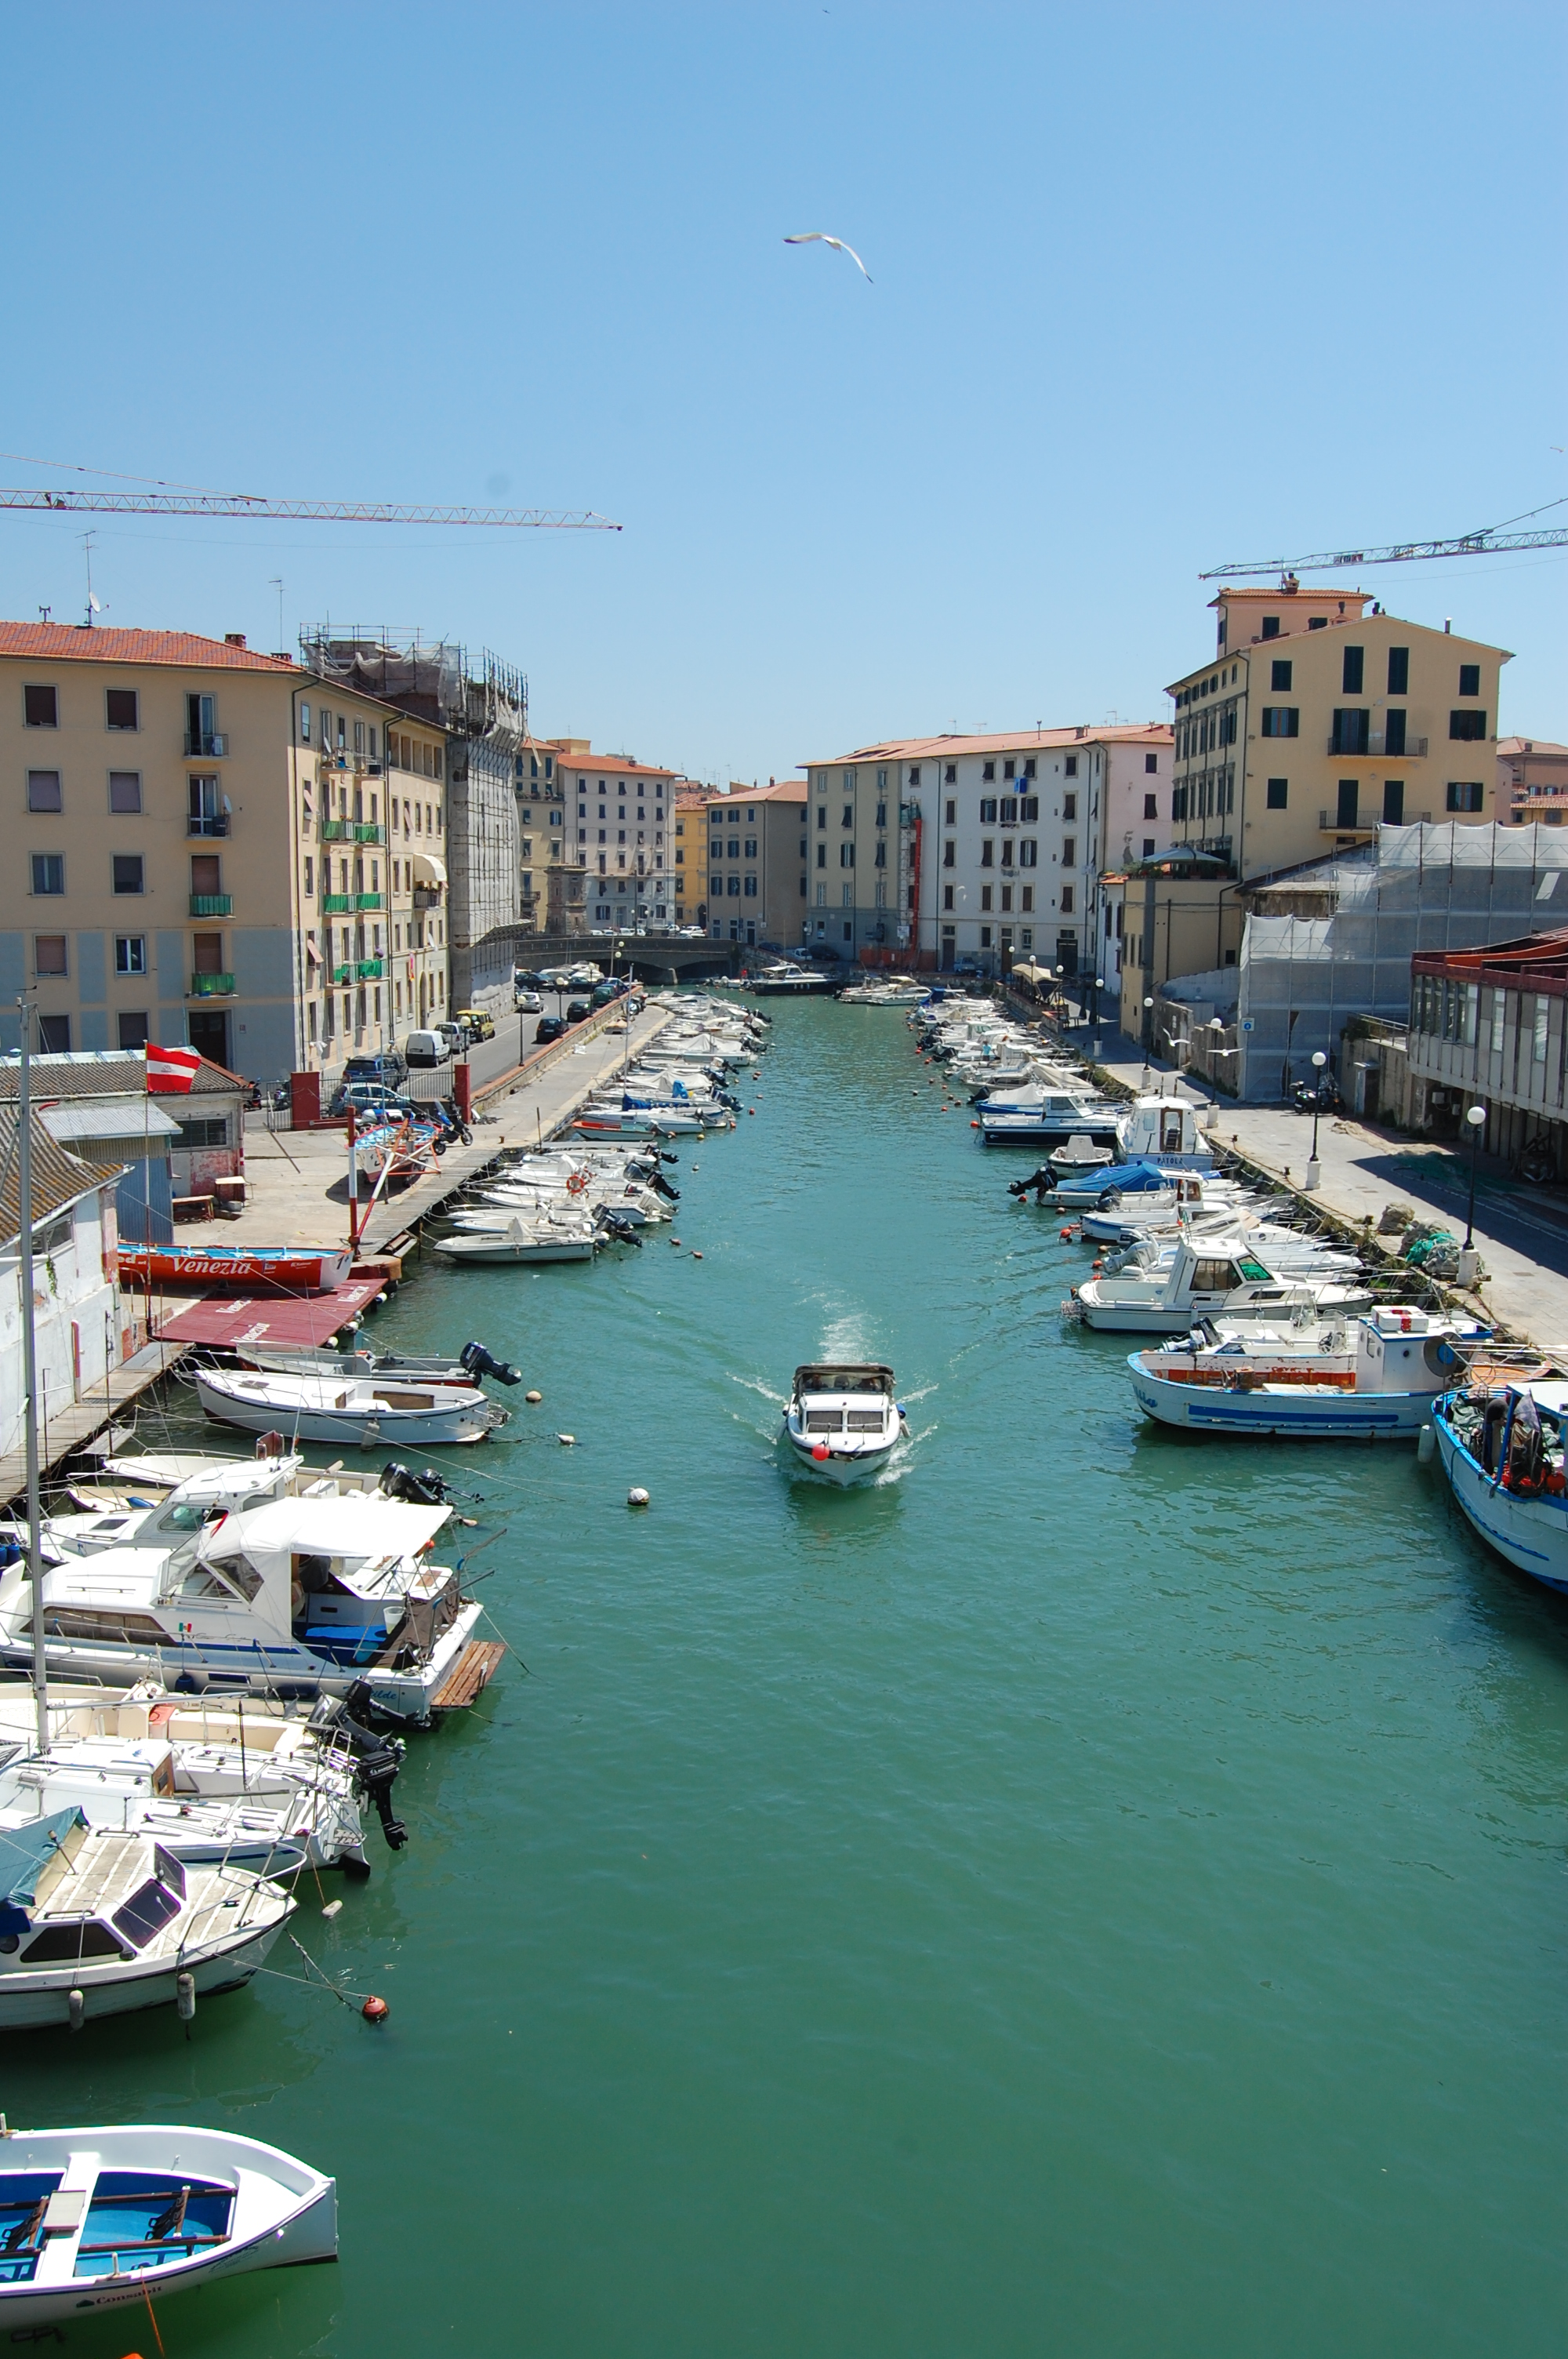 view of the river in Livorno, Italy